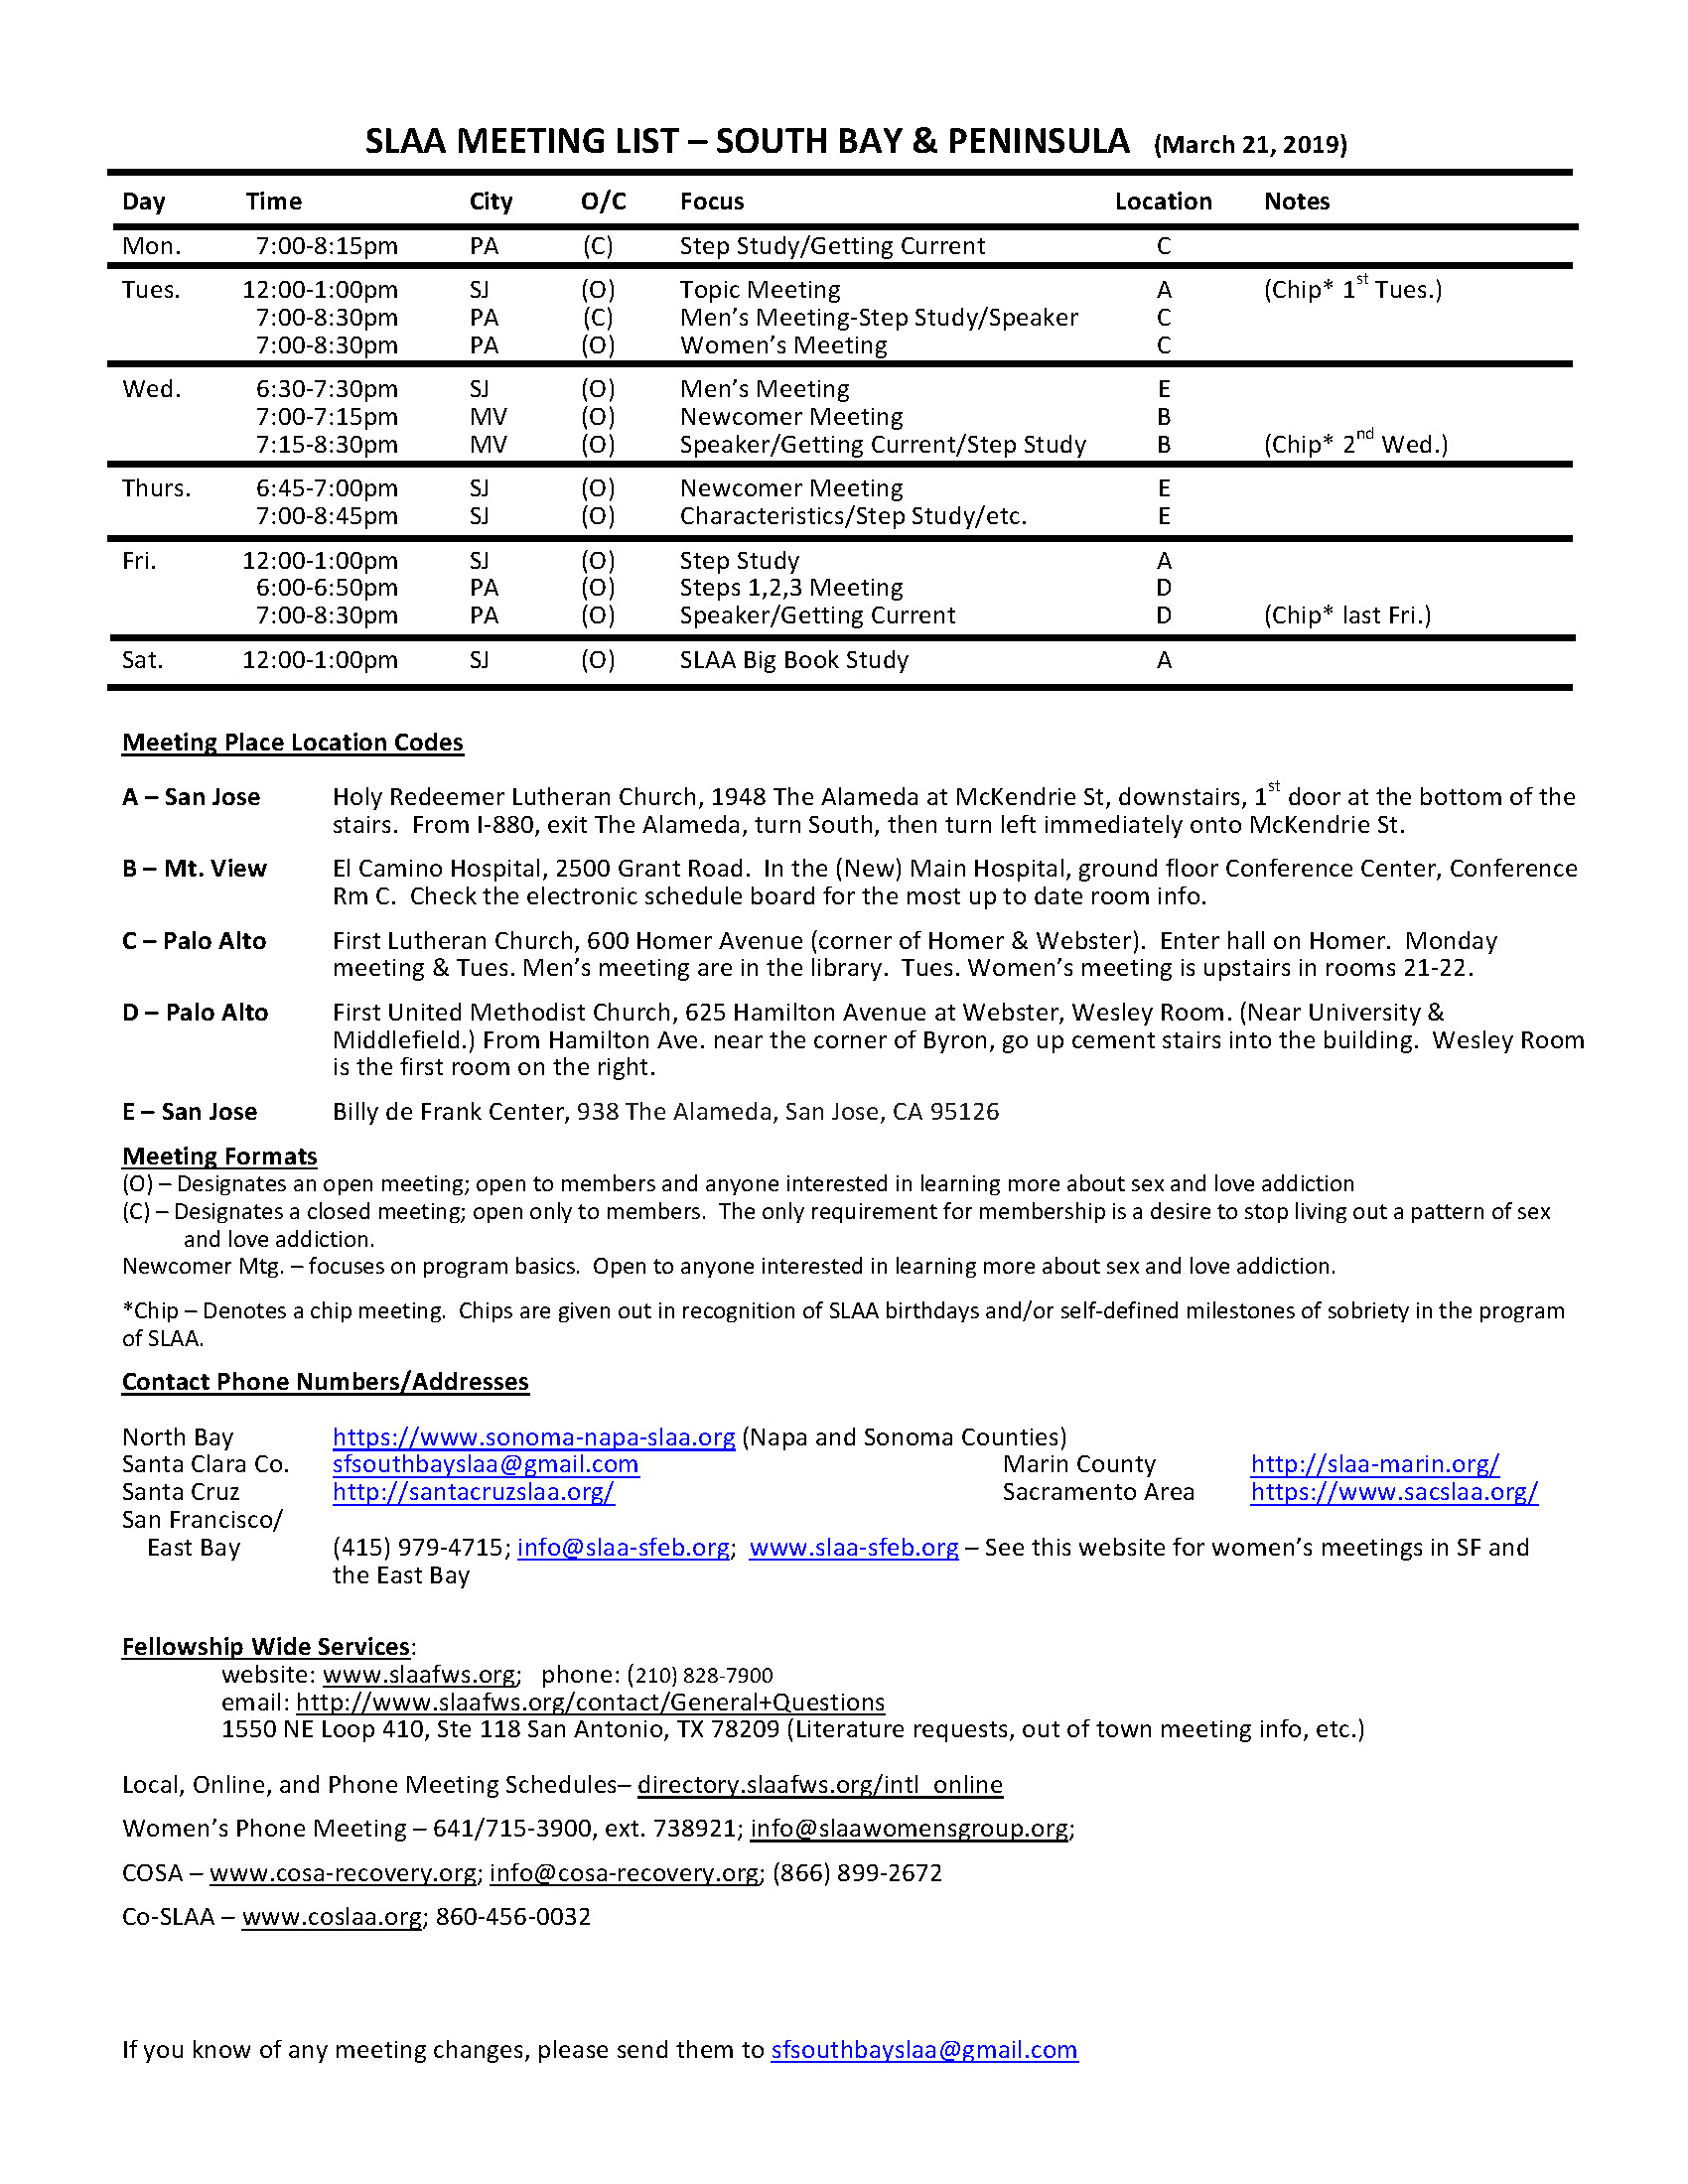 south bay meeting schedule